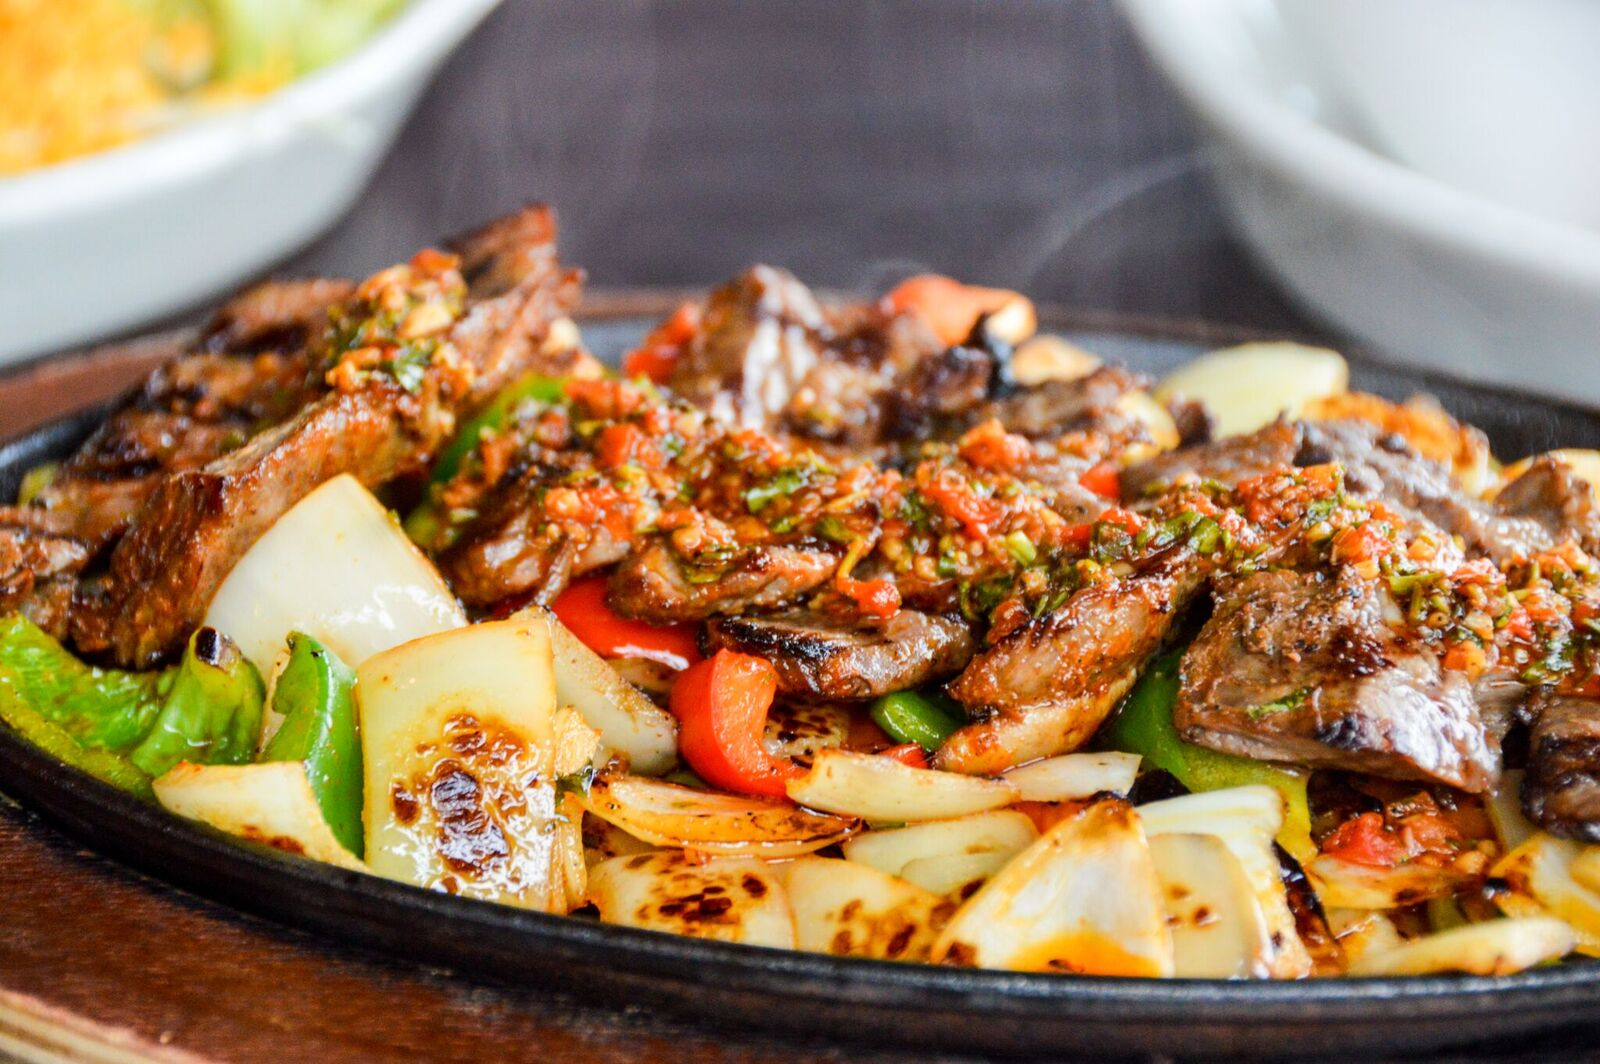 fajitas on a hot plate with steak, red peppers, green peppers and onions